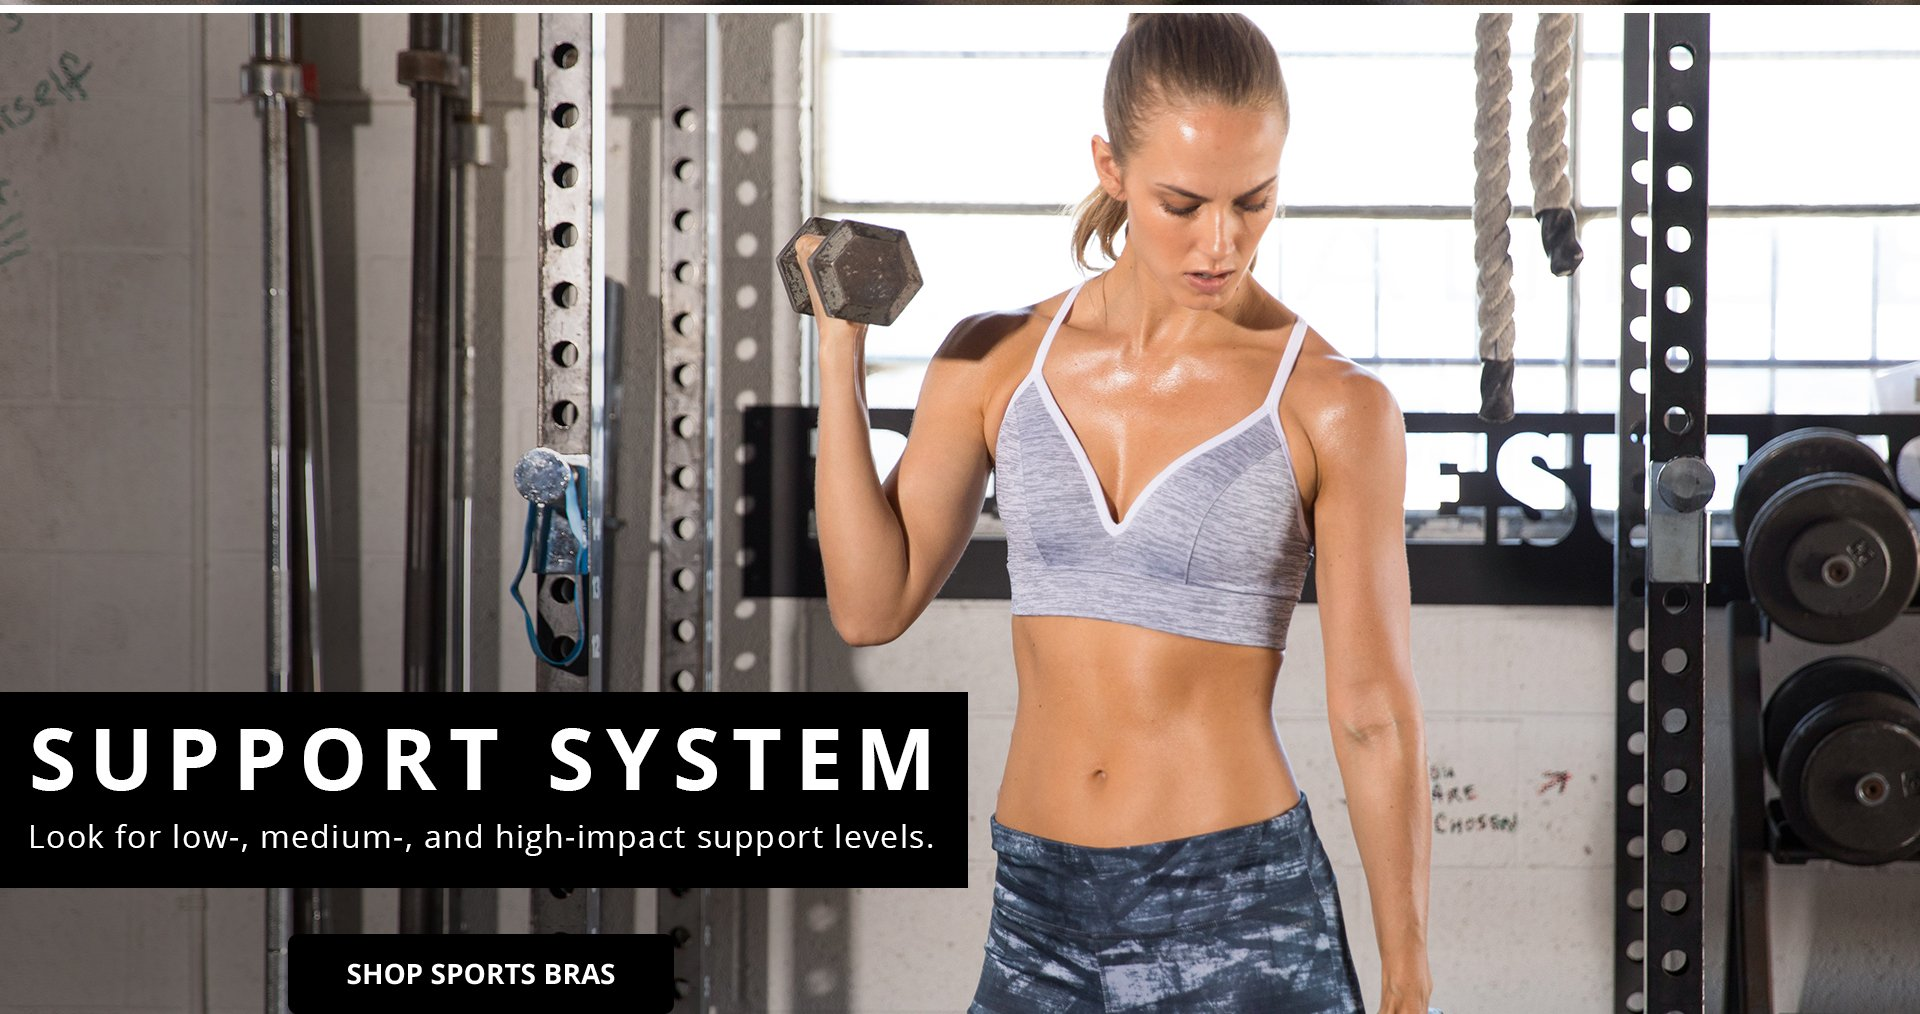 Support System. Look for low, medium, and high-impact support levels. Shop Sports bras